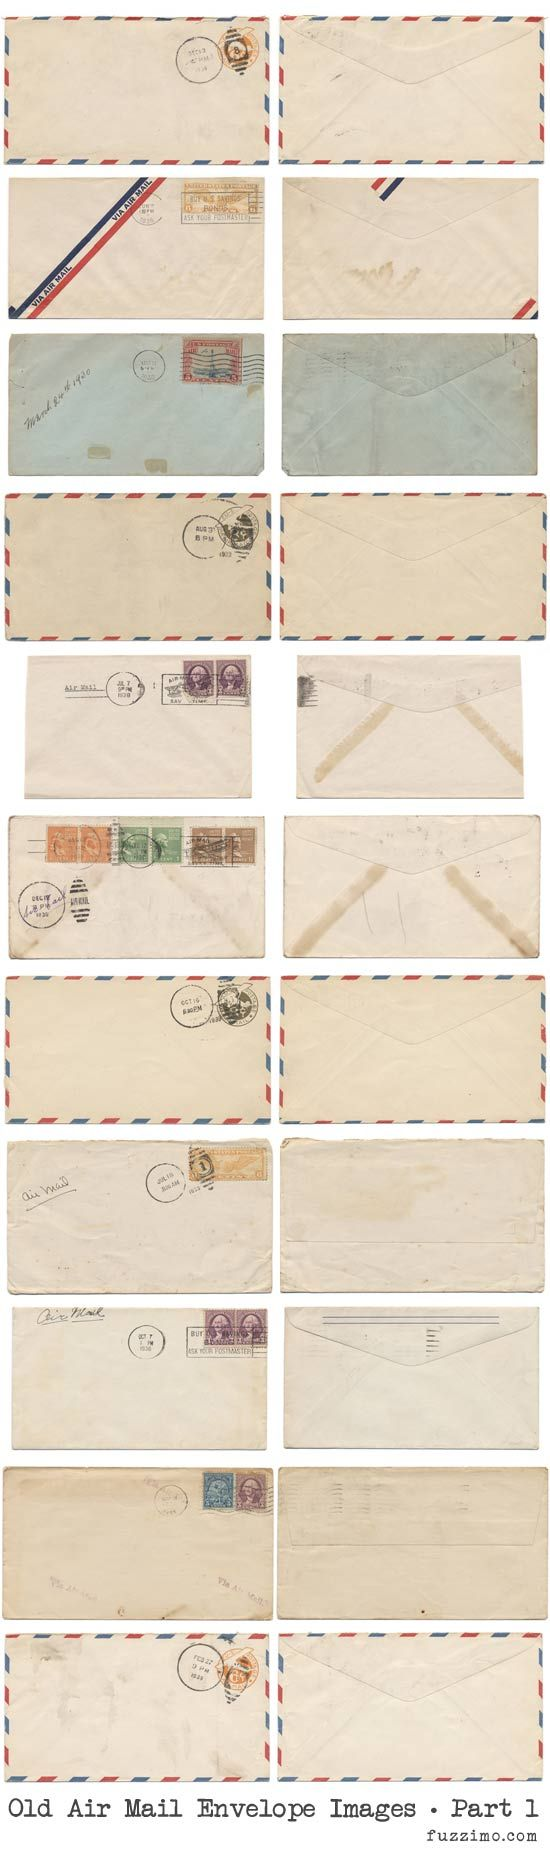 vintage envelopes to printIdeas, Mail Envelopes, Vintage Envelopes, Envelopes Image, Airmail, Postcards Mail Letters, Prints, Air Mail, Free Printables